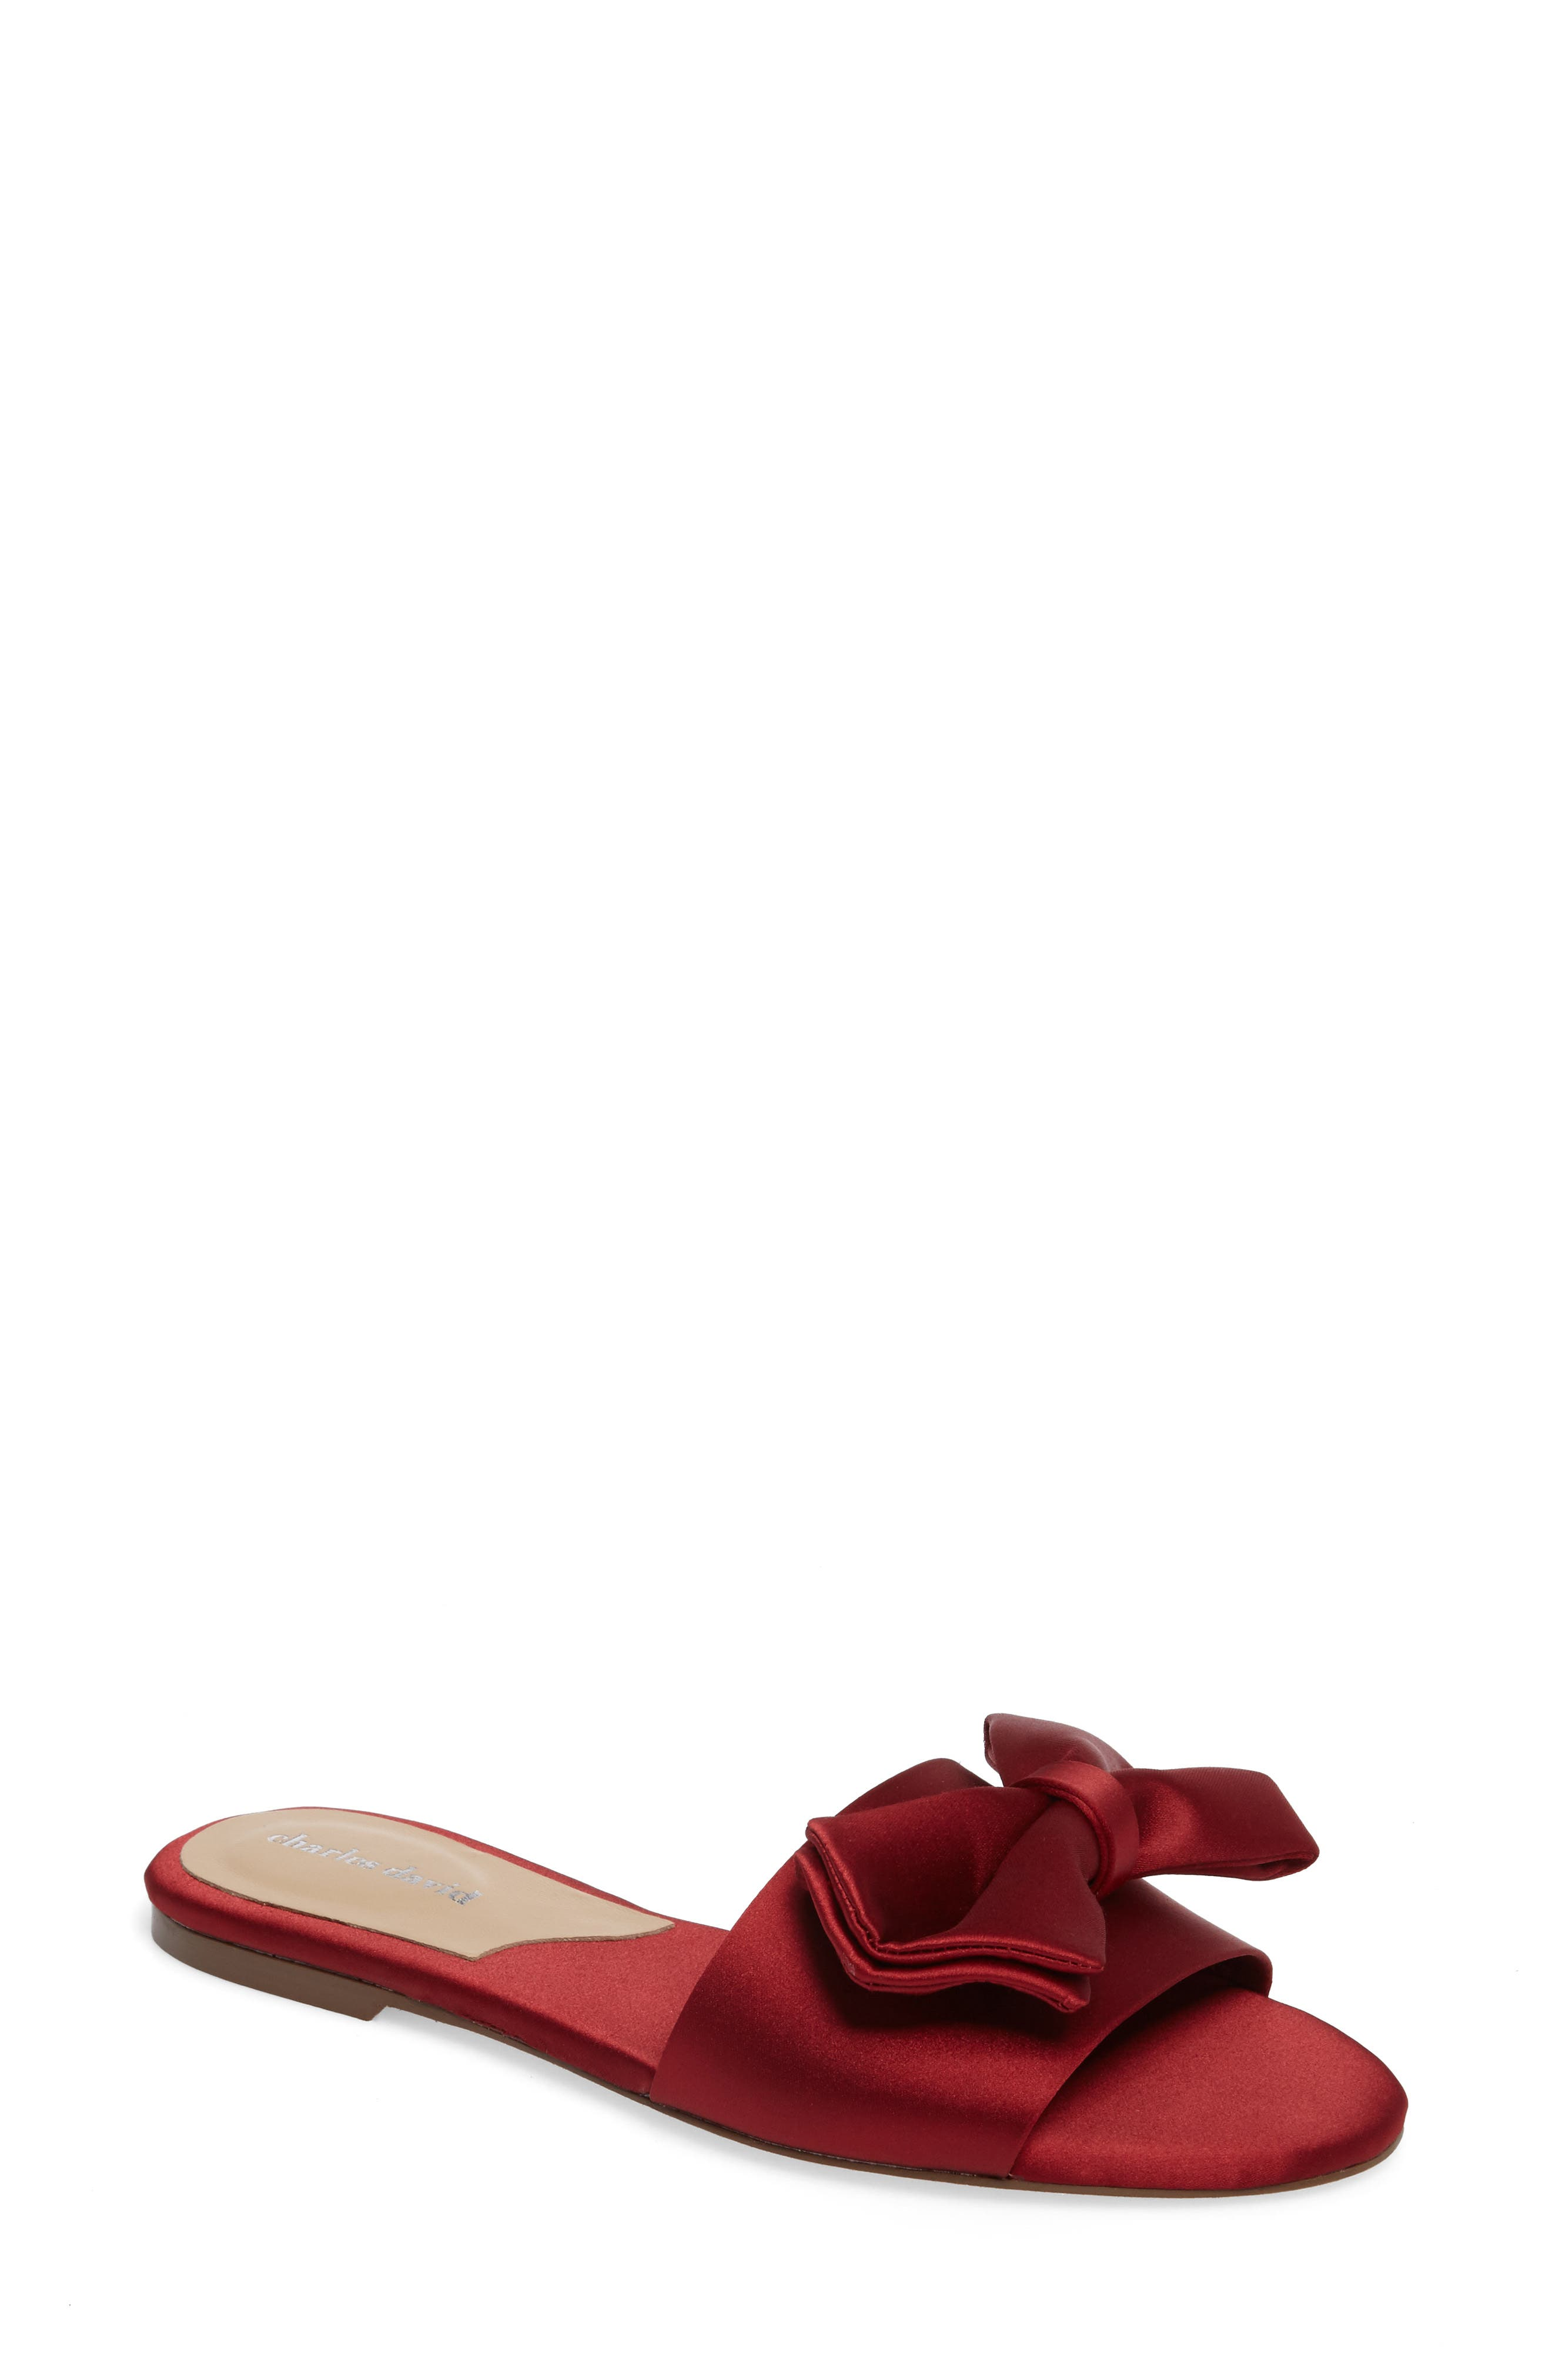 Bow Slide Sandal,                             Main thumbnail 1, color,                             Burgundy Satin